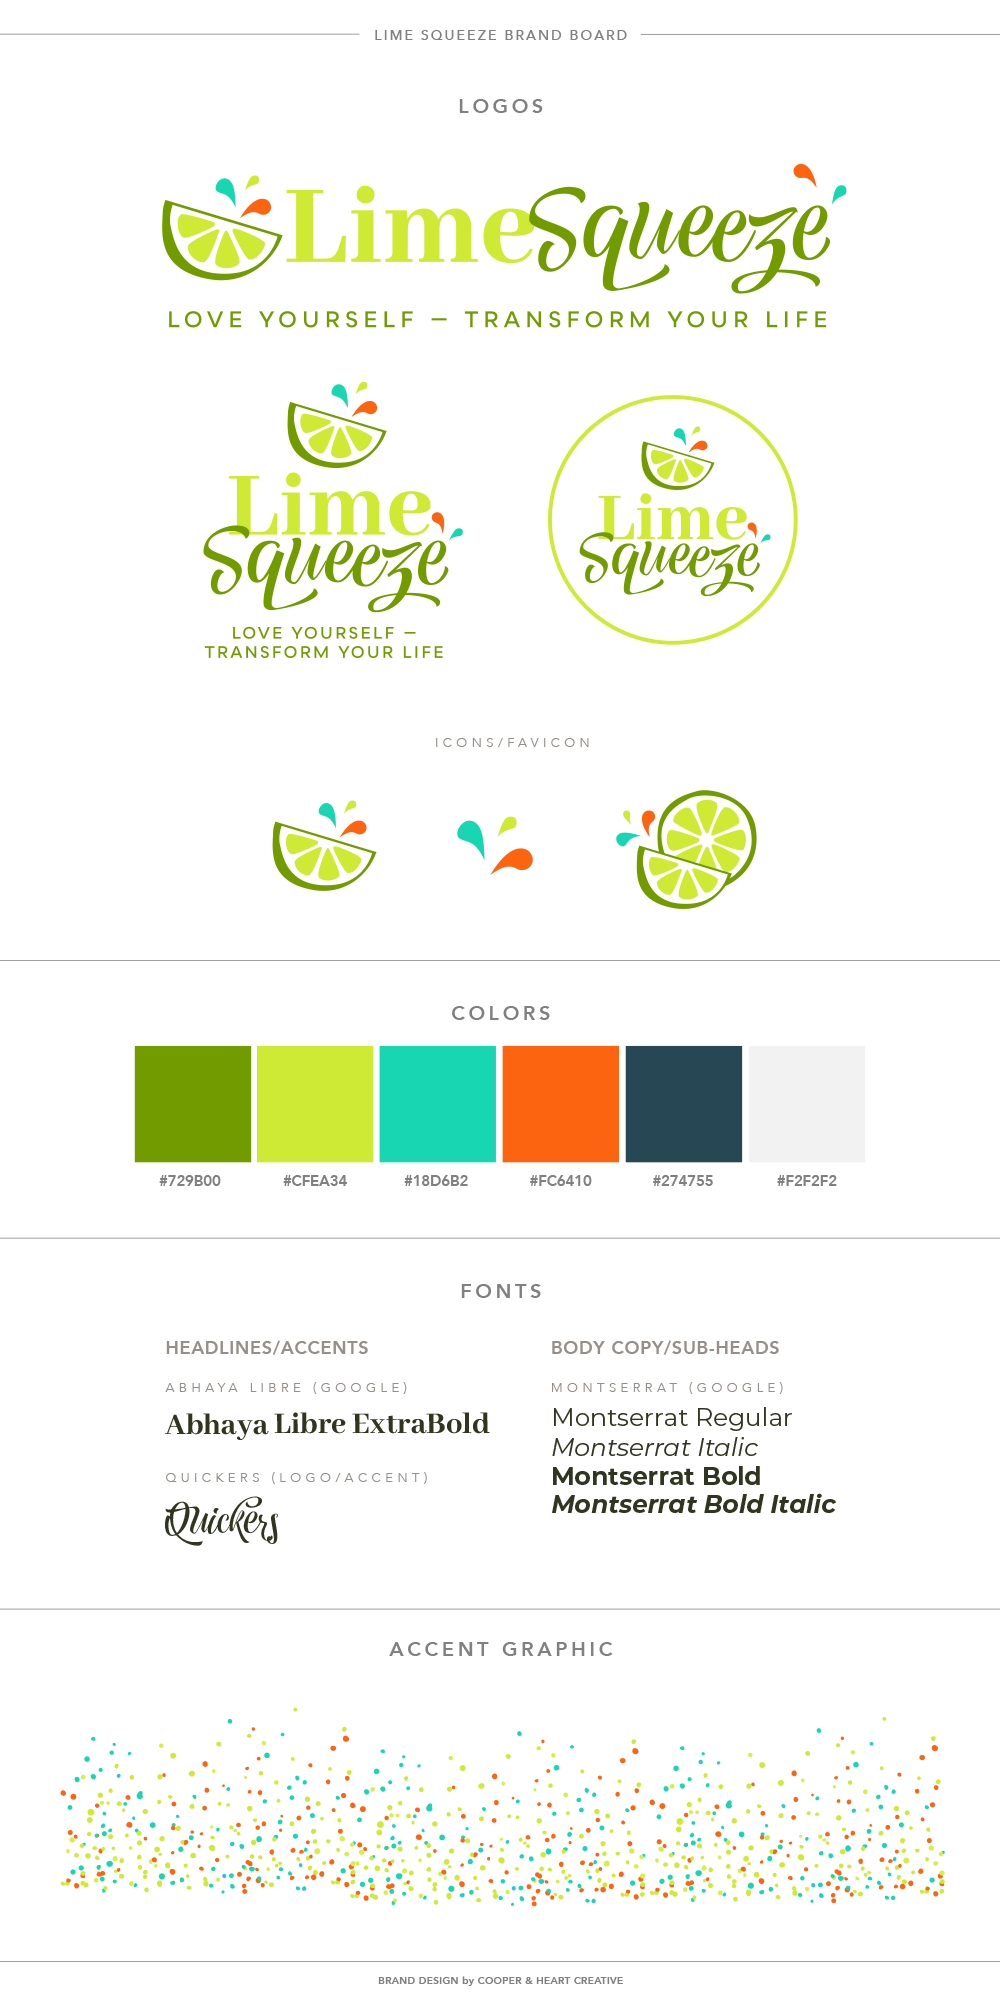 Lime Squeeze brand